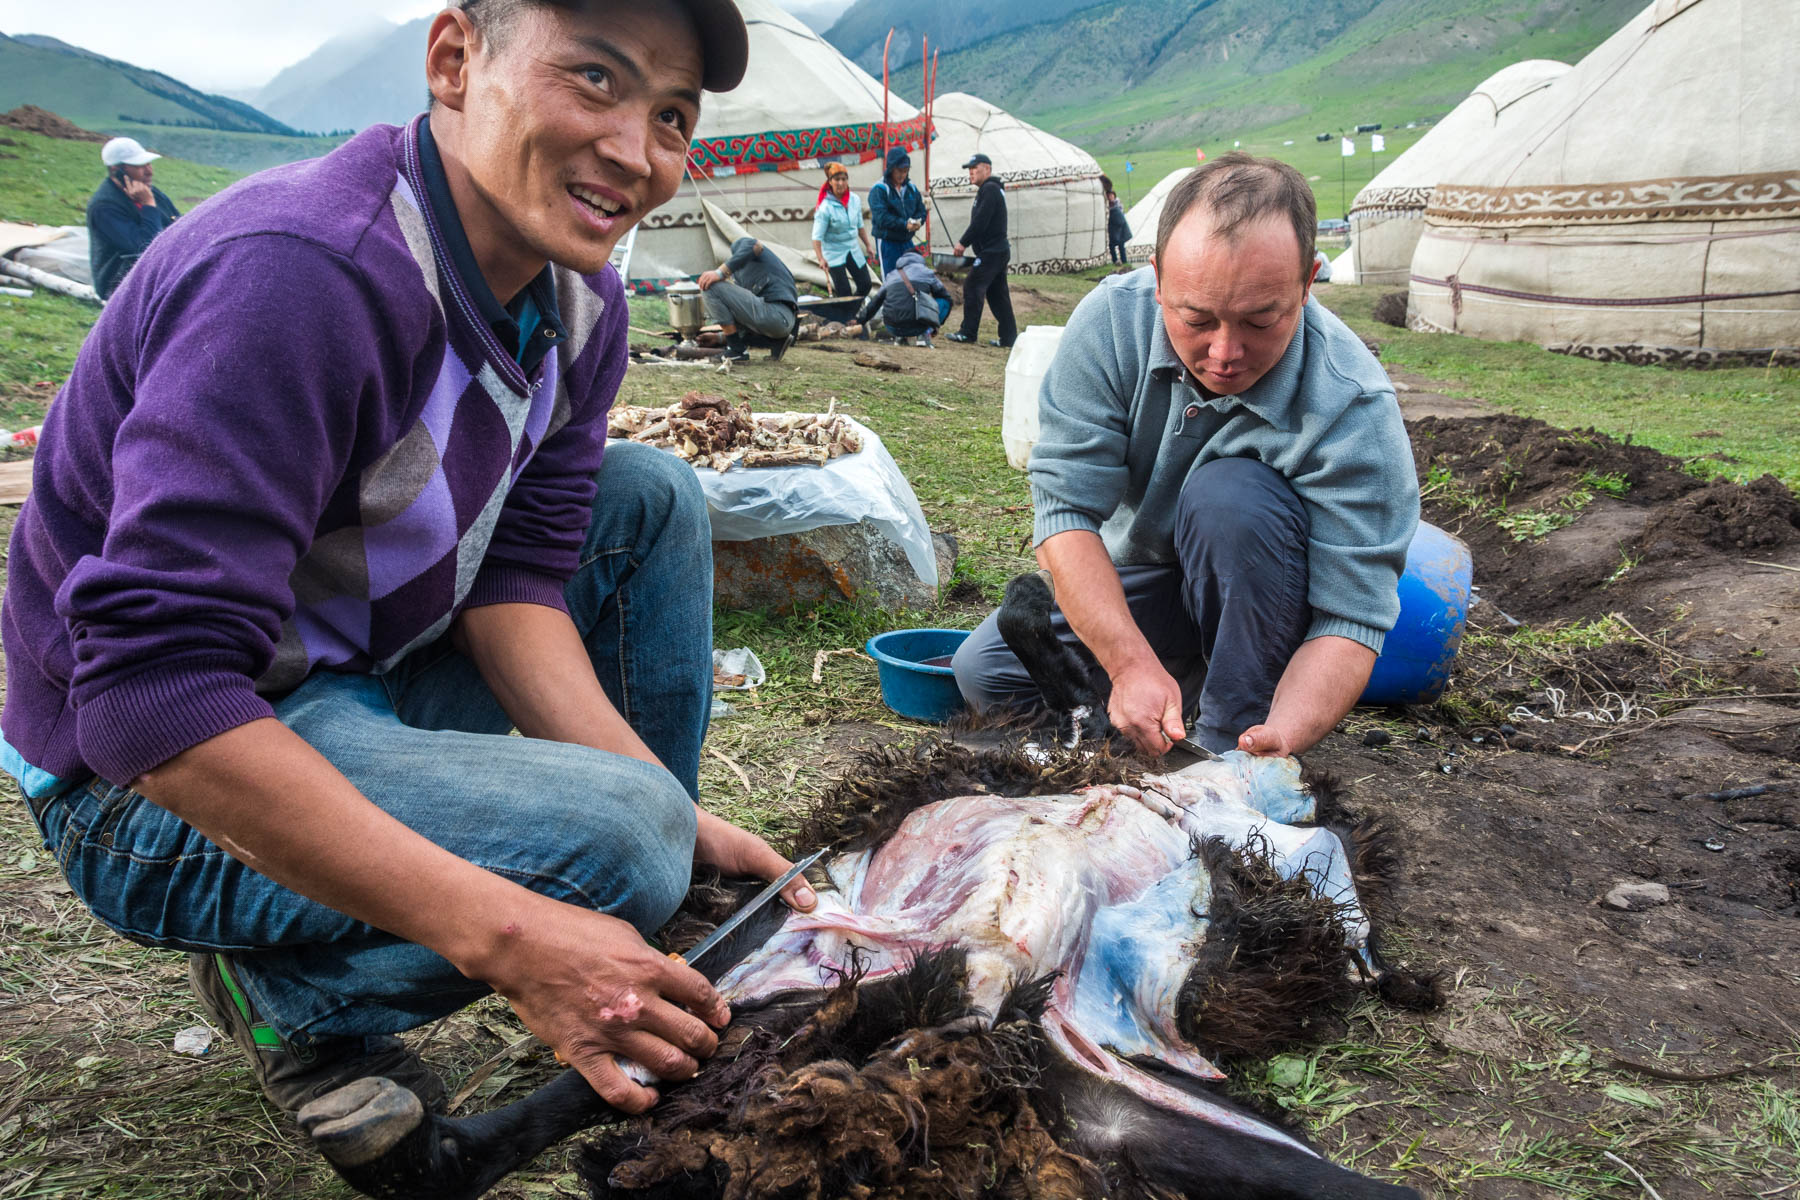 Two men preparing a sheep carcass at the 2016 World Nomad Games - Lost With Purpose